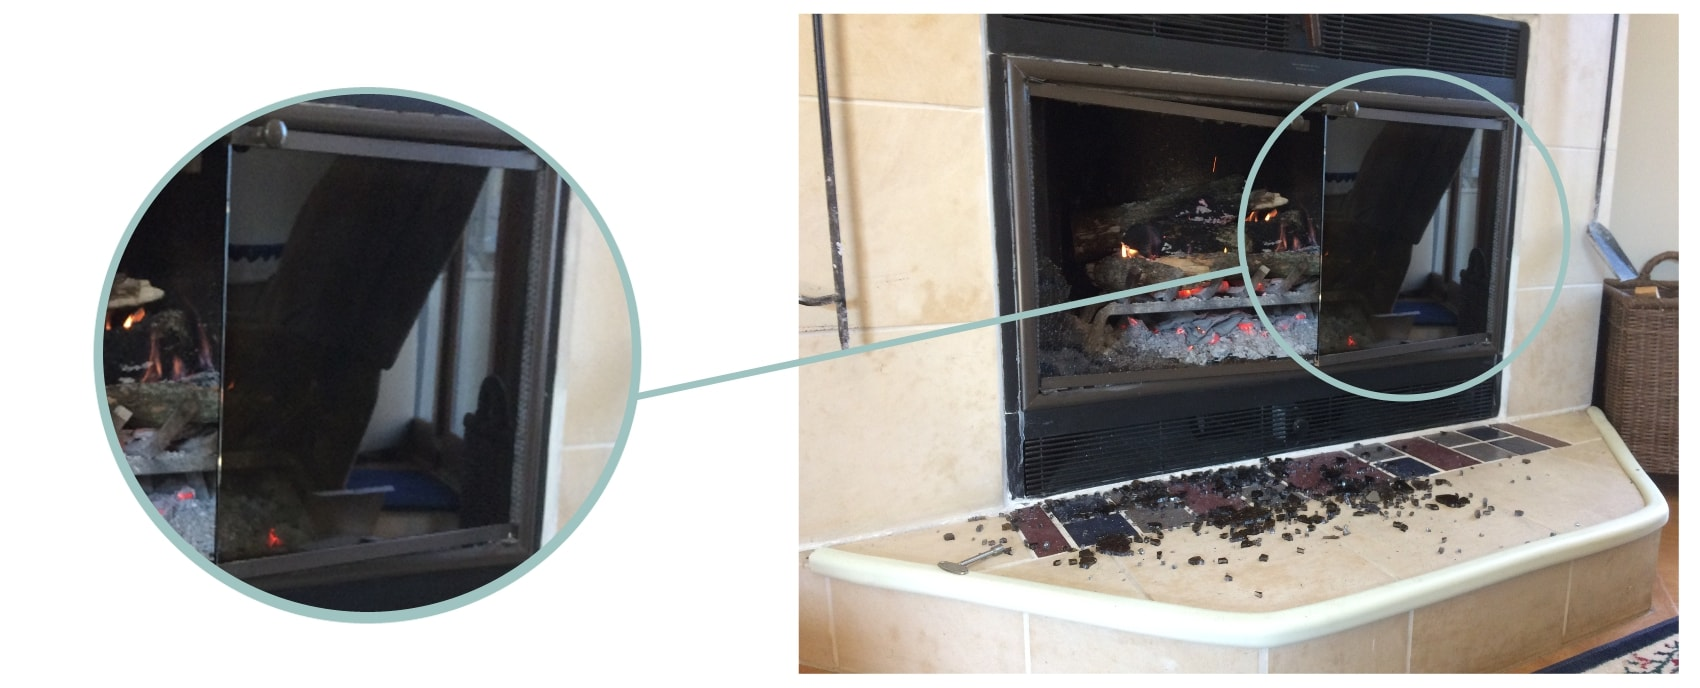 Don't close the doors while burning a fire in a ZC fireplace